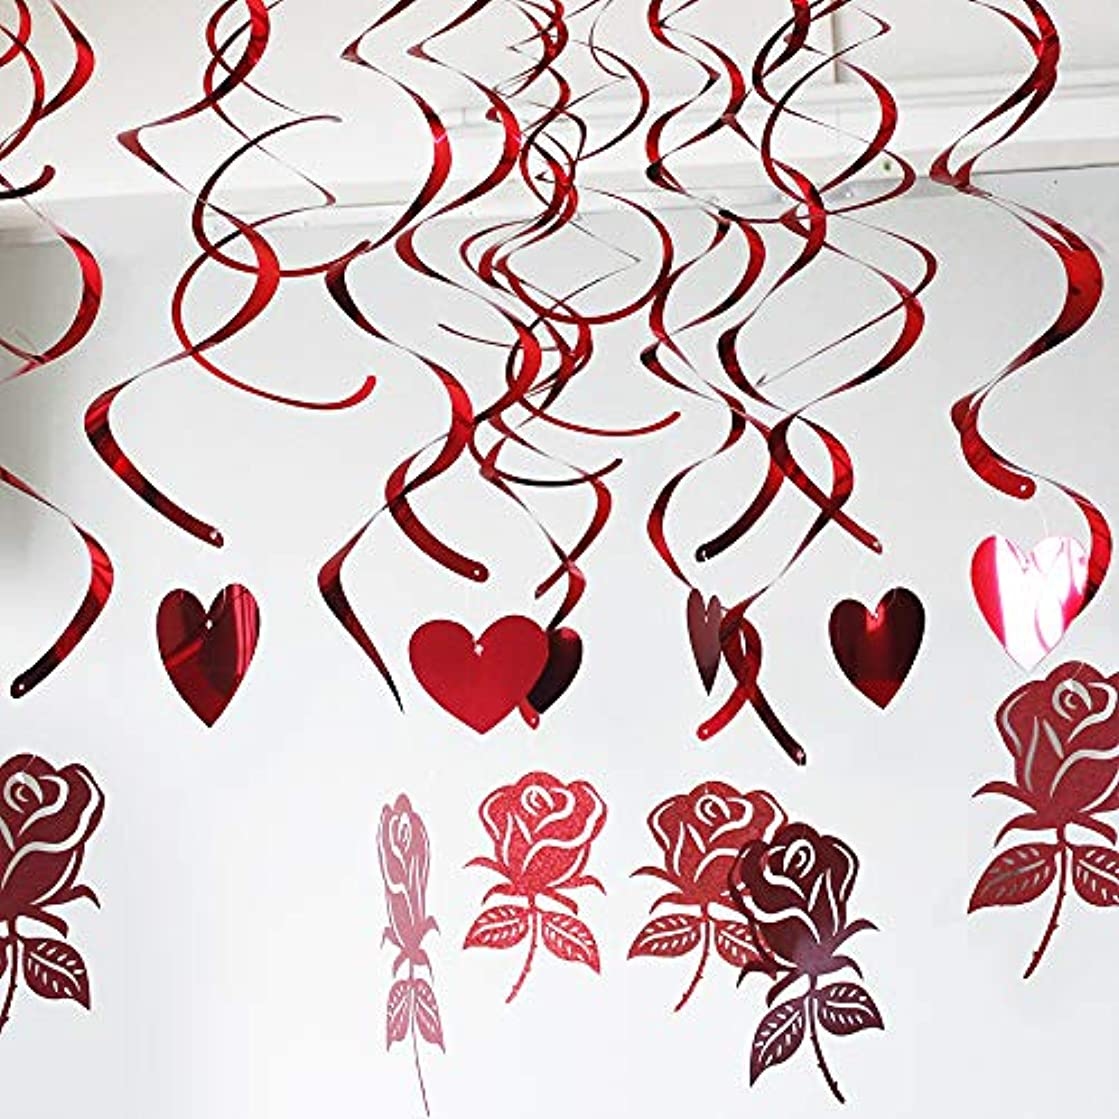 zeman Glitter Red Hearts and Rose Swirls Decoration Hanging Swirls Garland Foil Ceiling Ornaments for Wedding Engagement Bridal Shower Bachelorete Festival Party Decorations